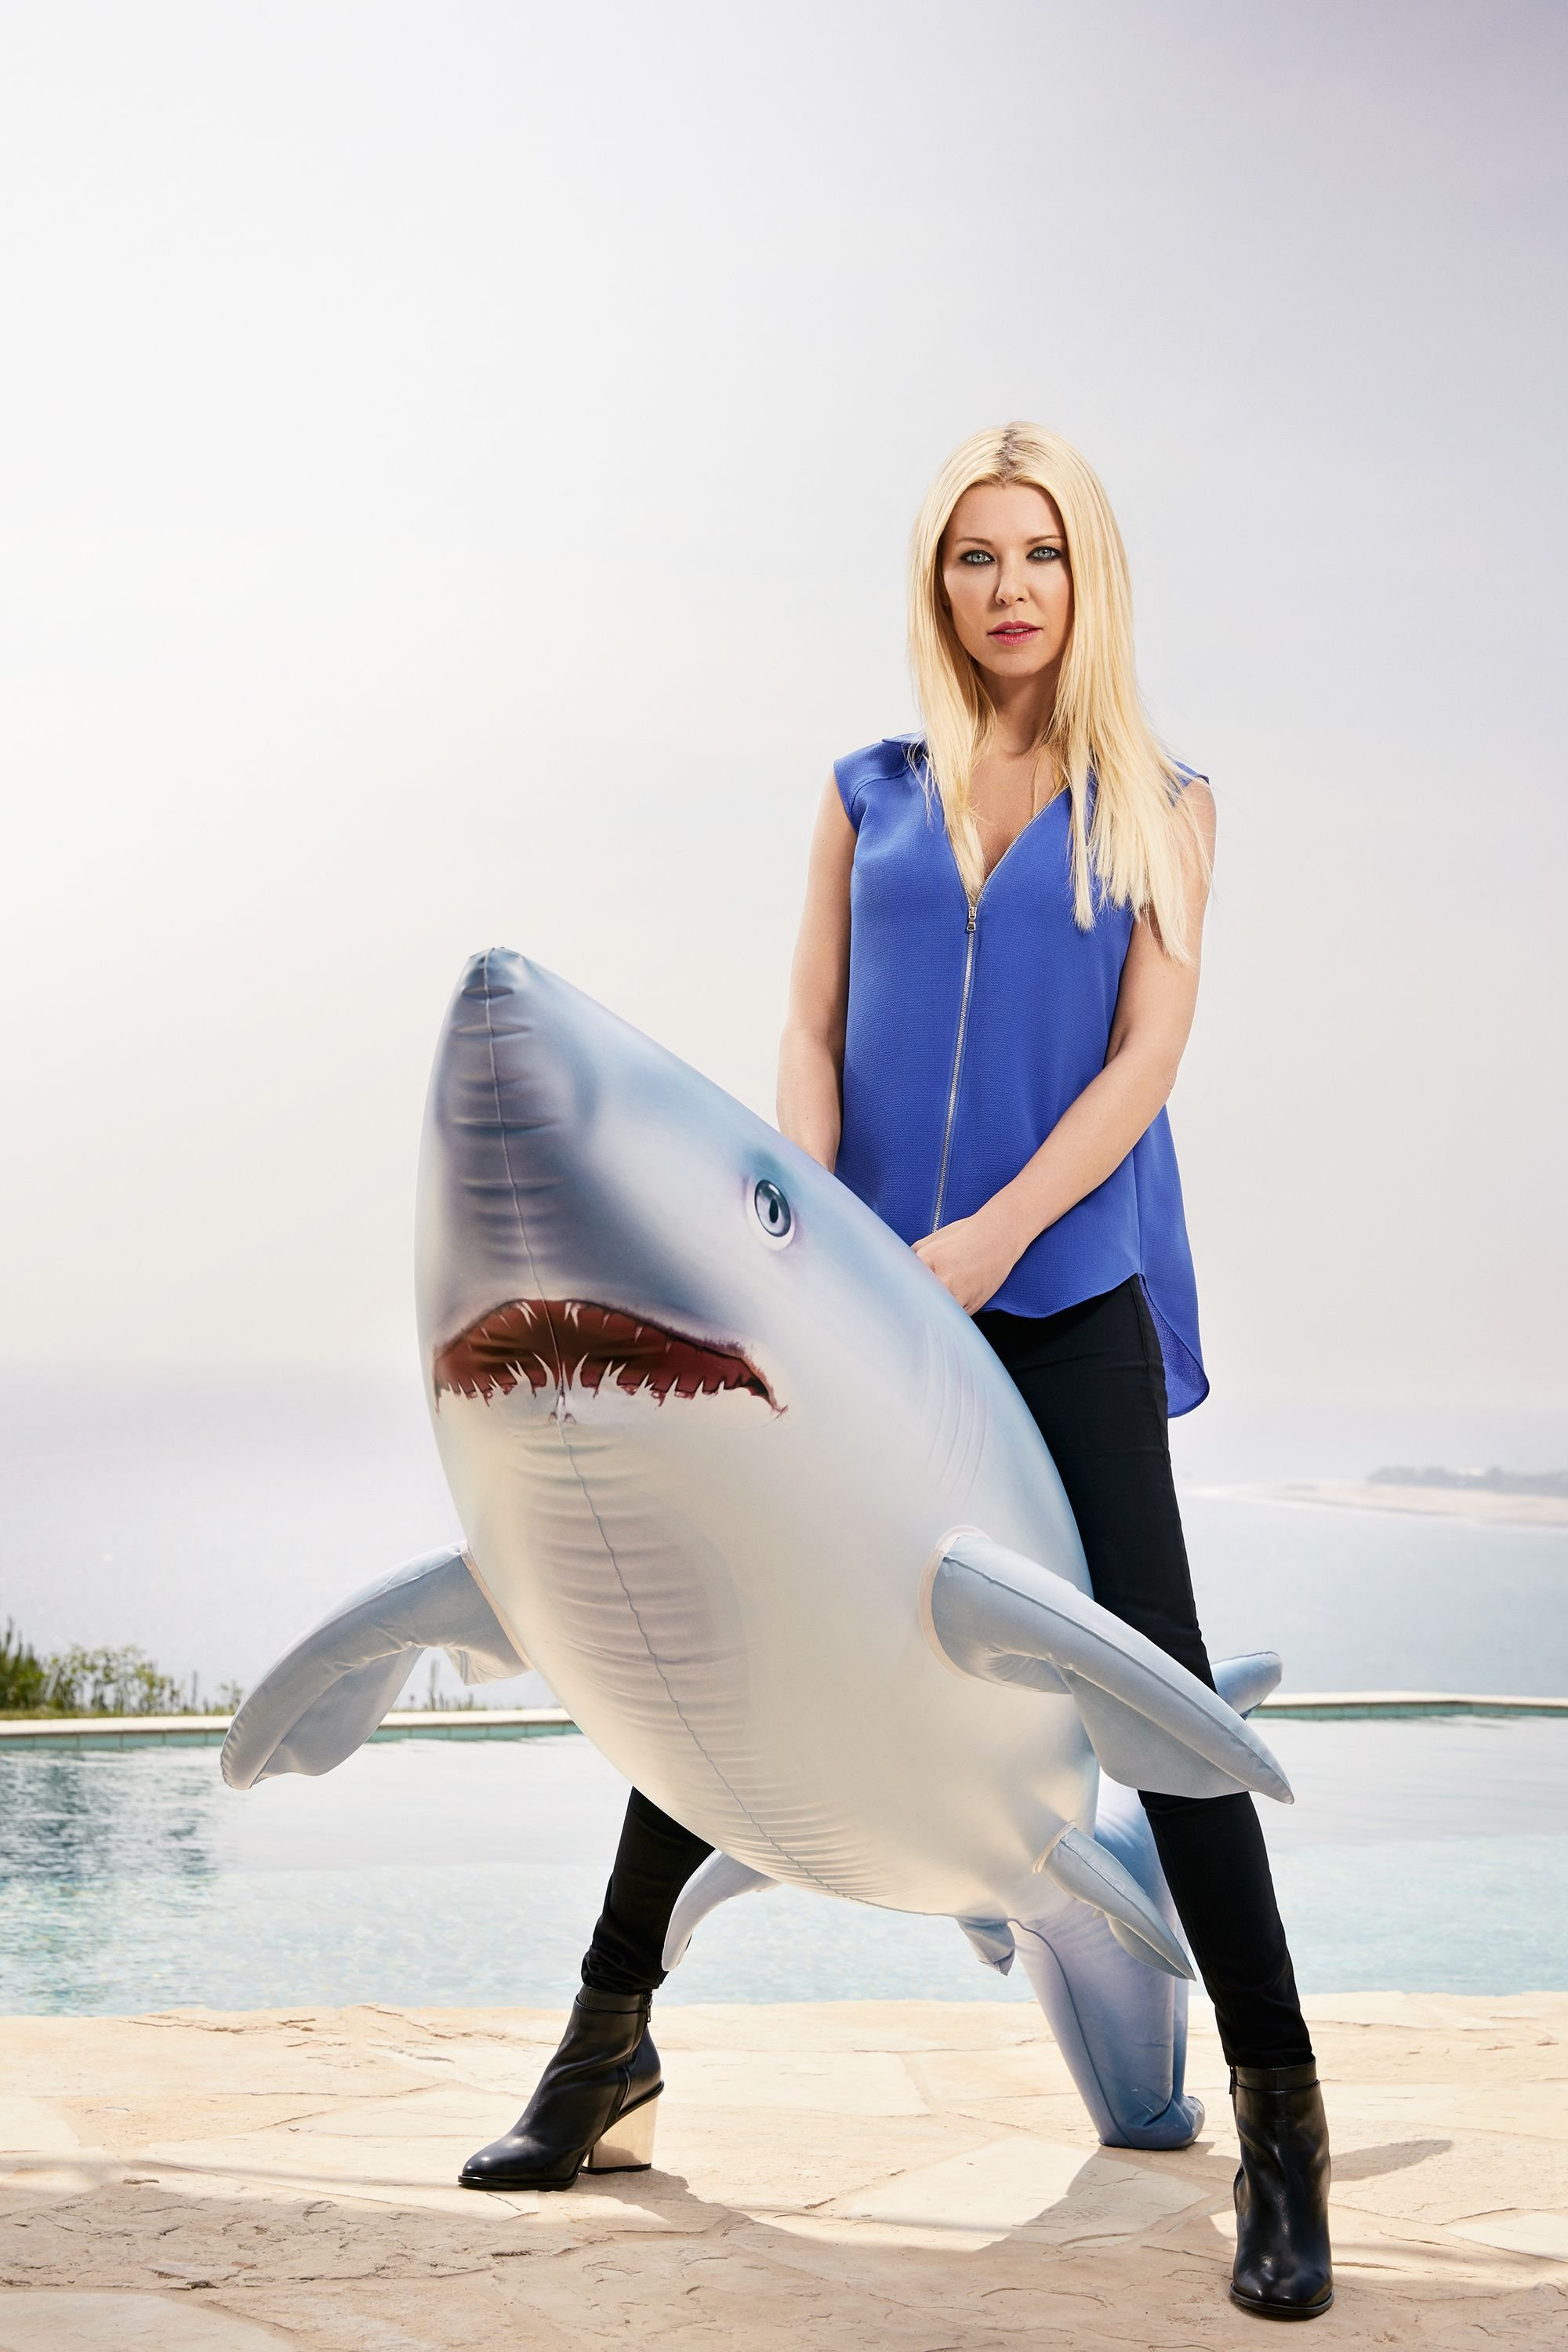 Tara Reid used to party a lot / Getty Images